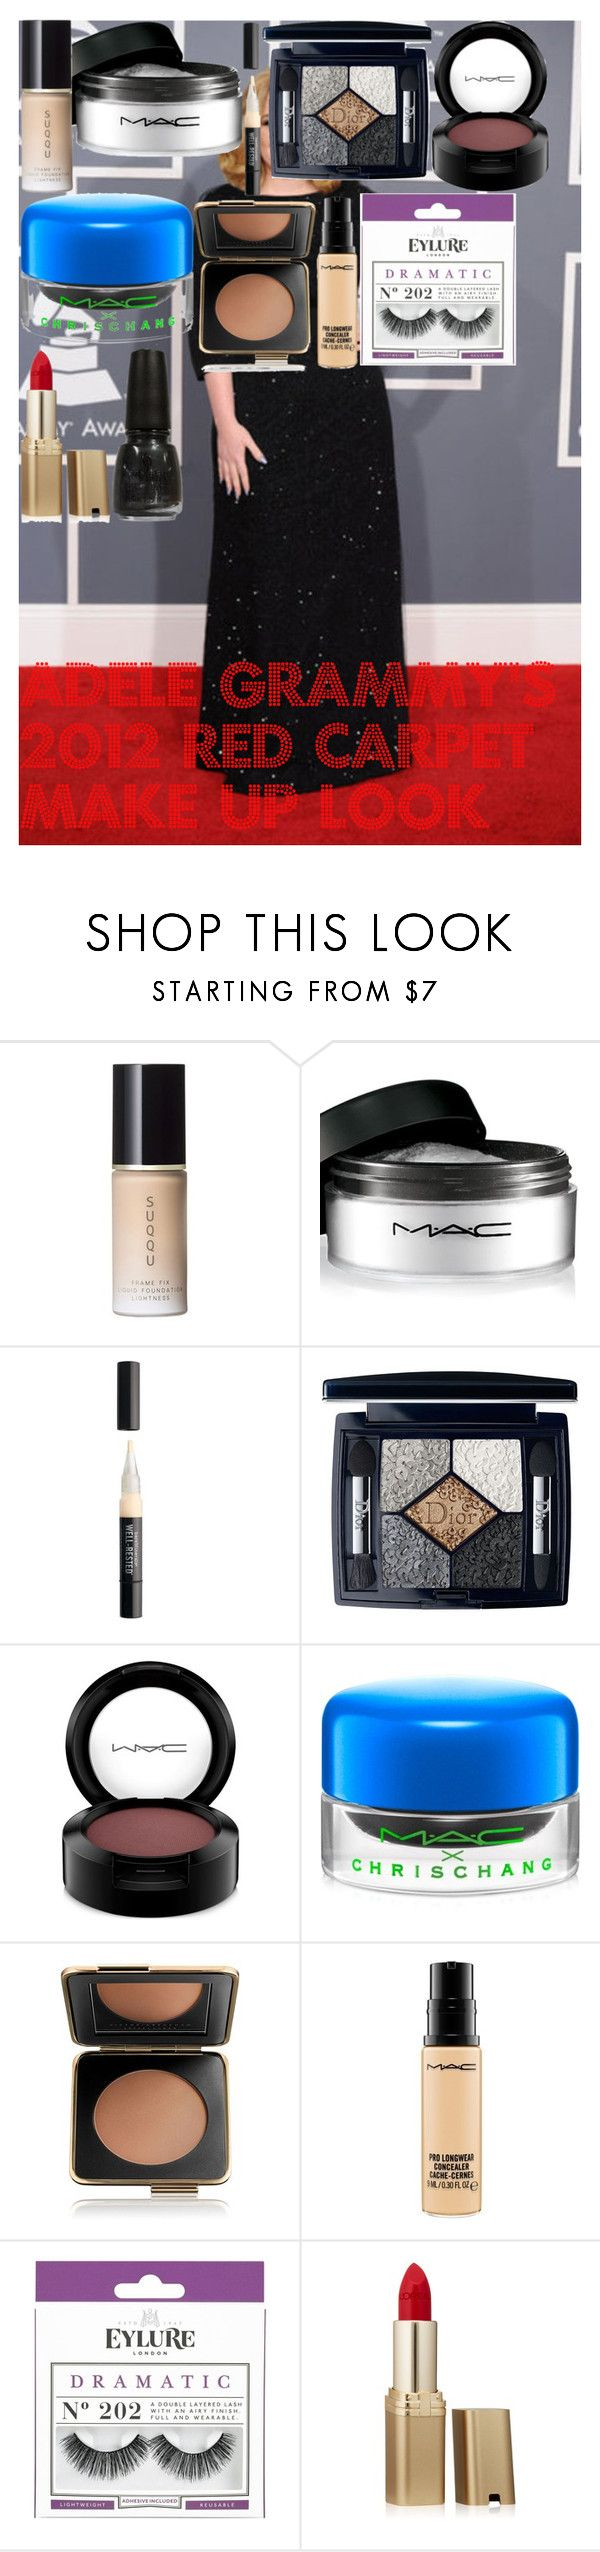 Adele Grammy's 2012 Red Carpet make up look by oroartye-1 on Polyvore featuring beauty, Christian Dior, SUQQU, Estée Lauder, MAC Cosmetics, L'Oréal Paris, eylure, Bare Escentuals and China Glaze